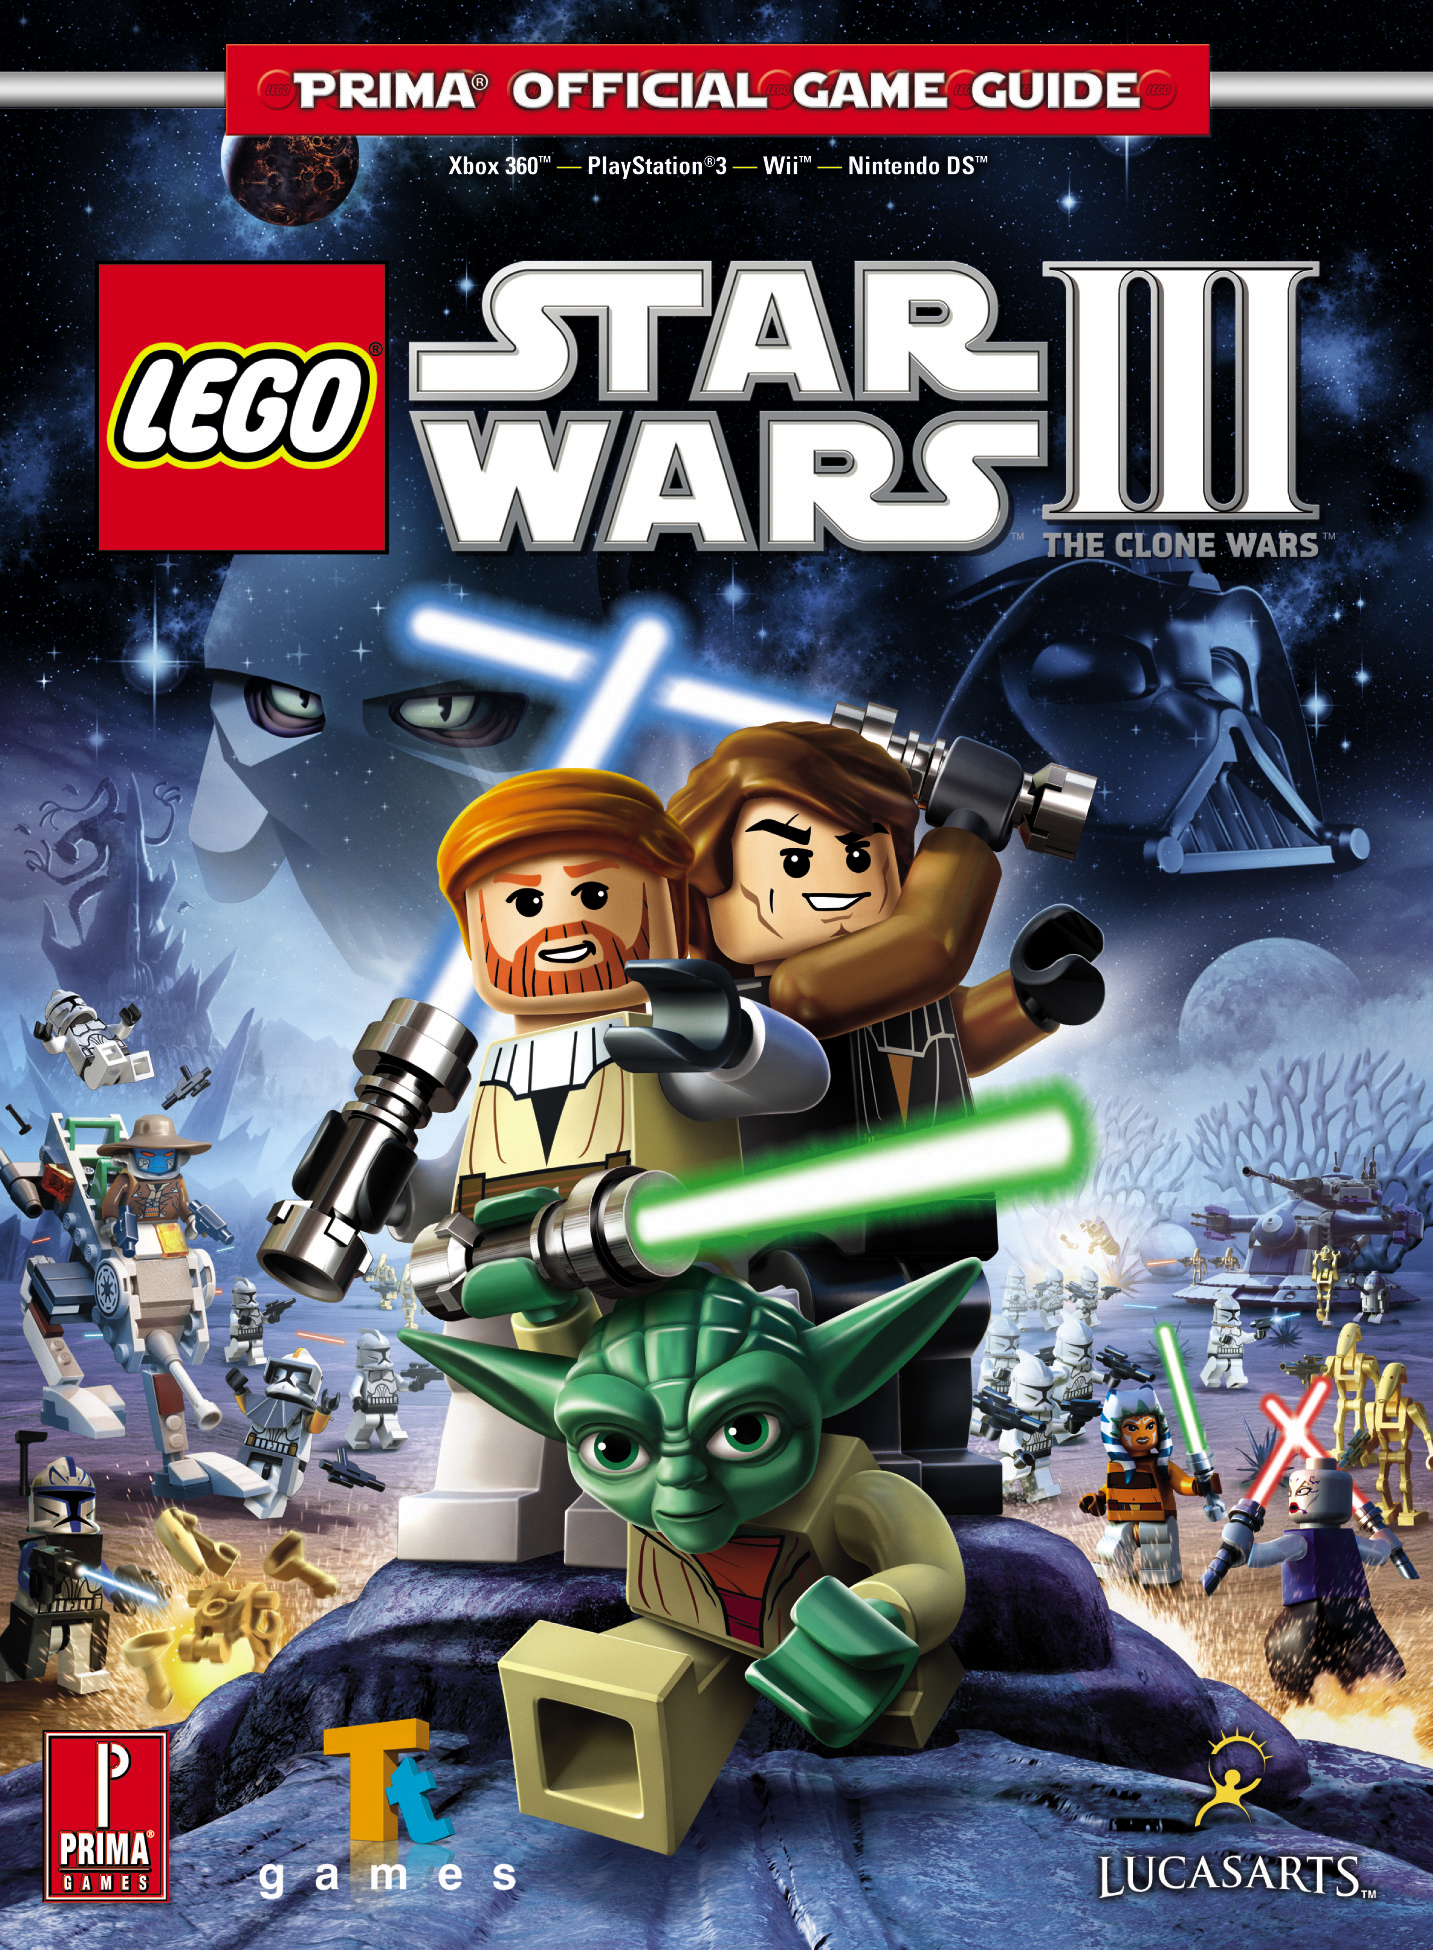 lego star wars iii the clone wars prima official game guide rh starwars wikia com Prima Games Skyrim Prima Games Skyrim